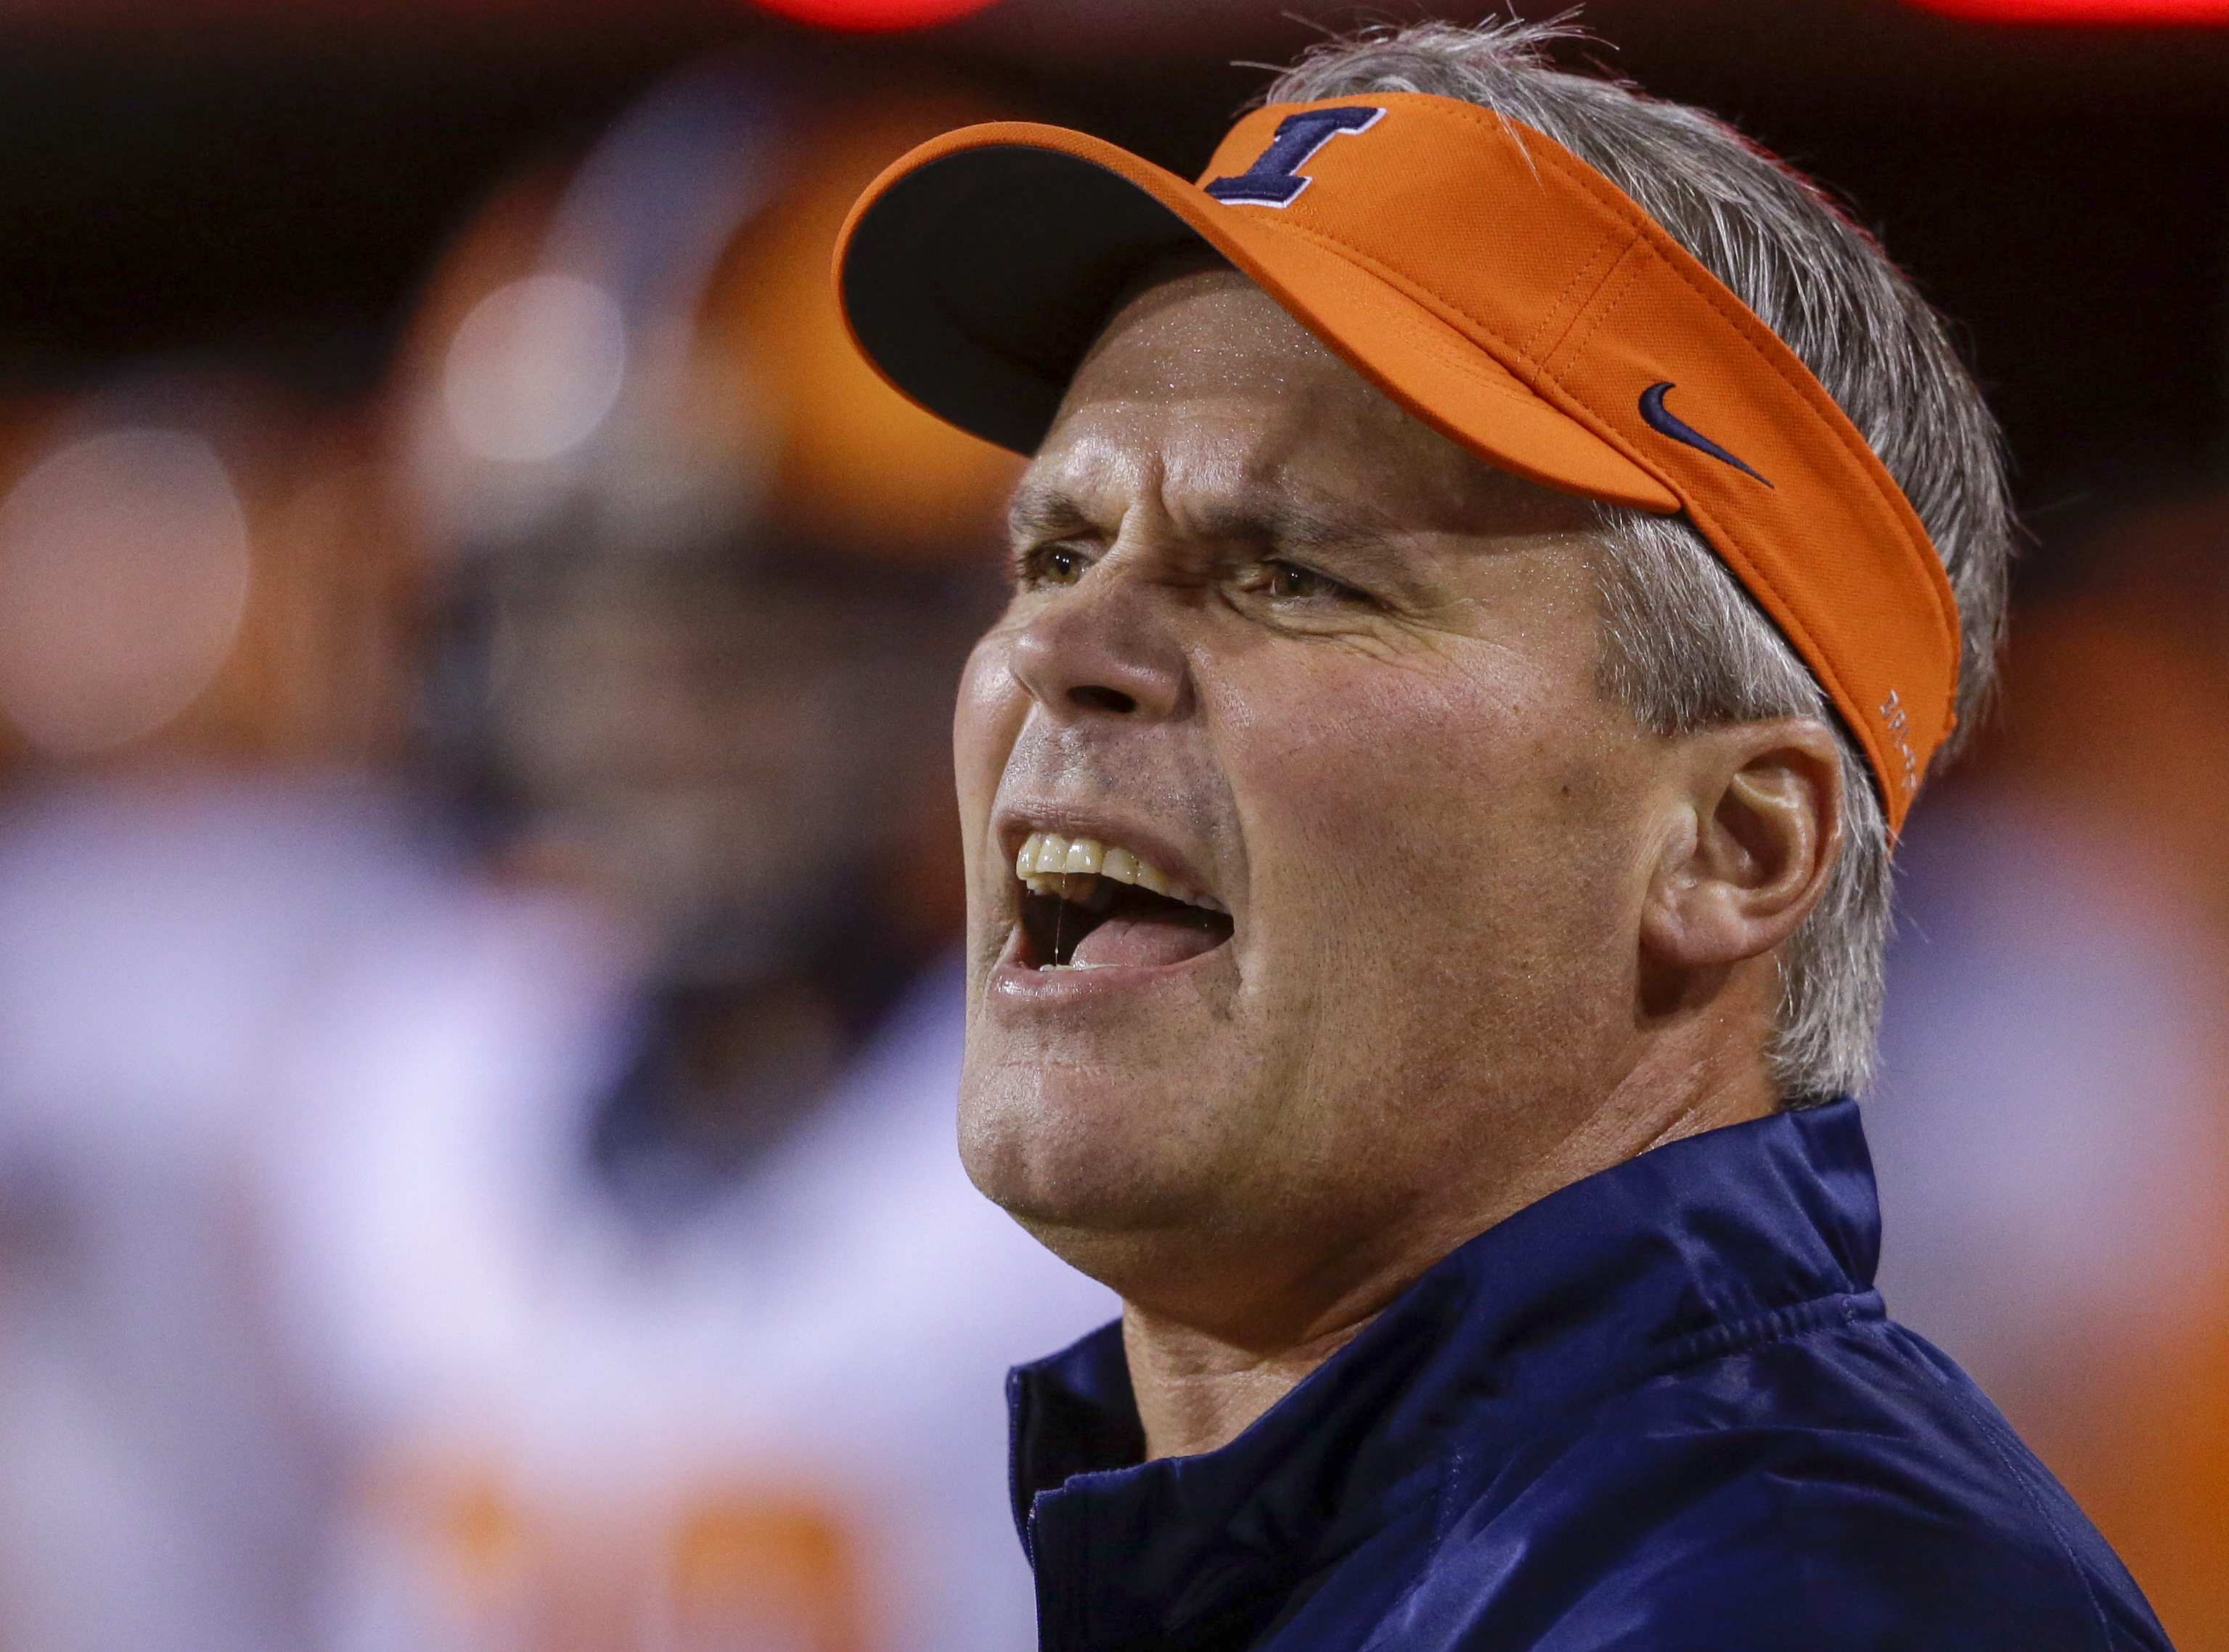 FILE - In this Sept. 27, 2014, file photo, Illinois head coach Tim Beckman calls instructions before an NCAA college football game against Nebraska in Lincoln, Neb. Illinois fired coach Tim Beckman one week before the start of the season Friday, Aug. 29,